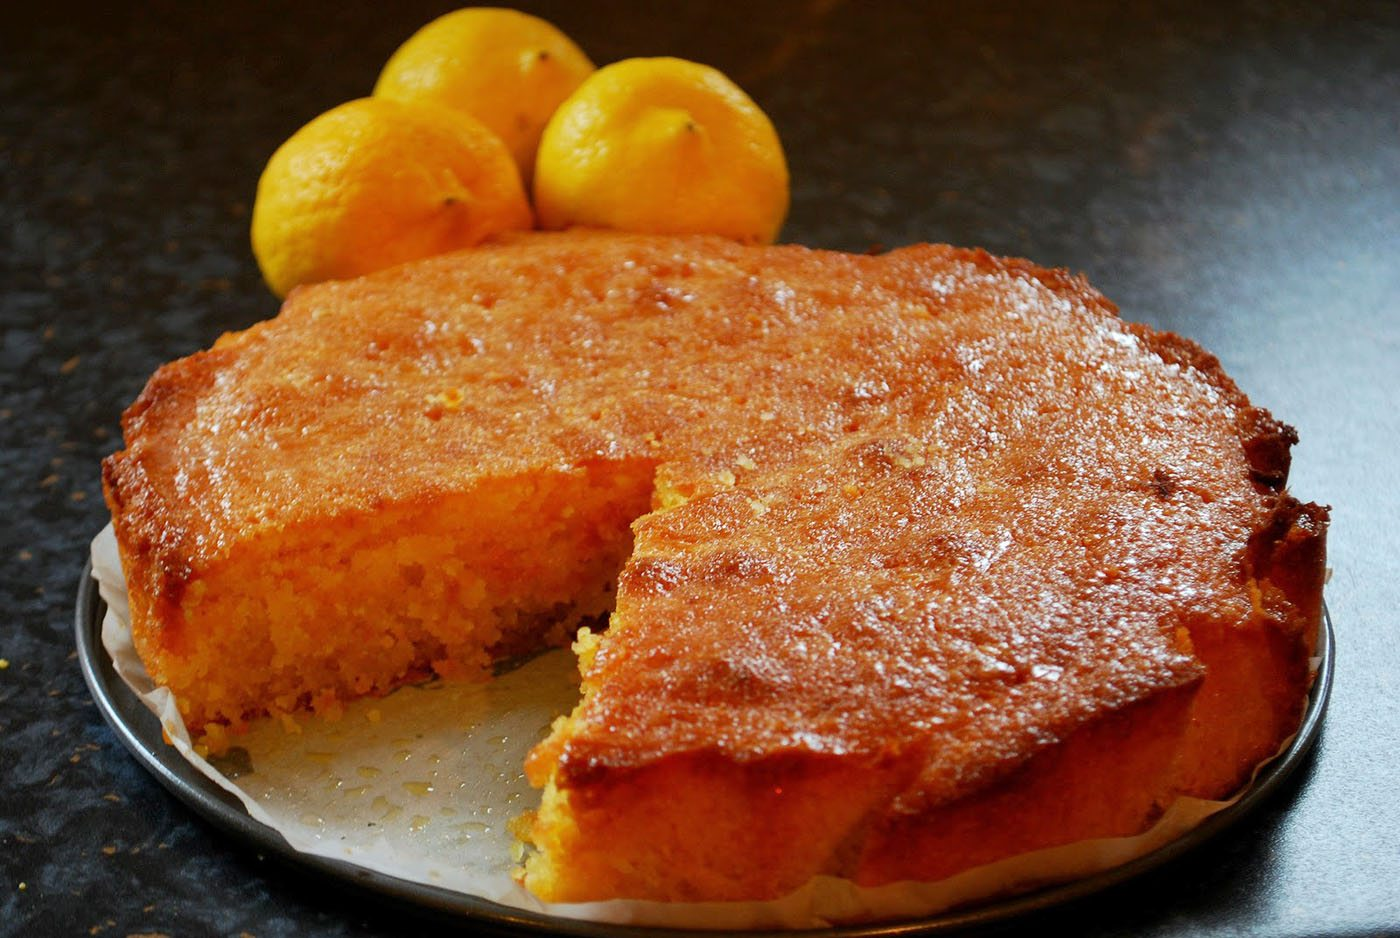 Recipe for Lemon and Coconut Polenta Cake